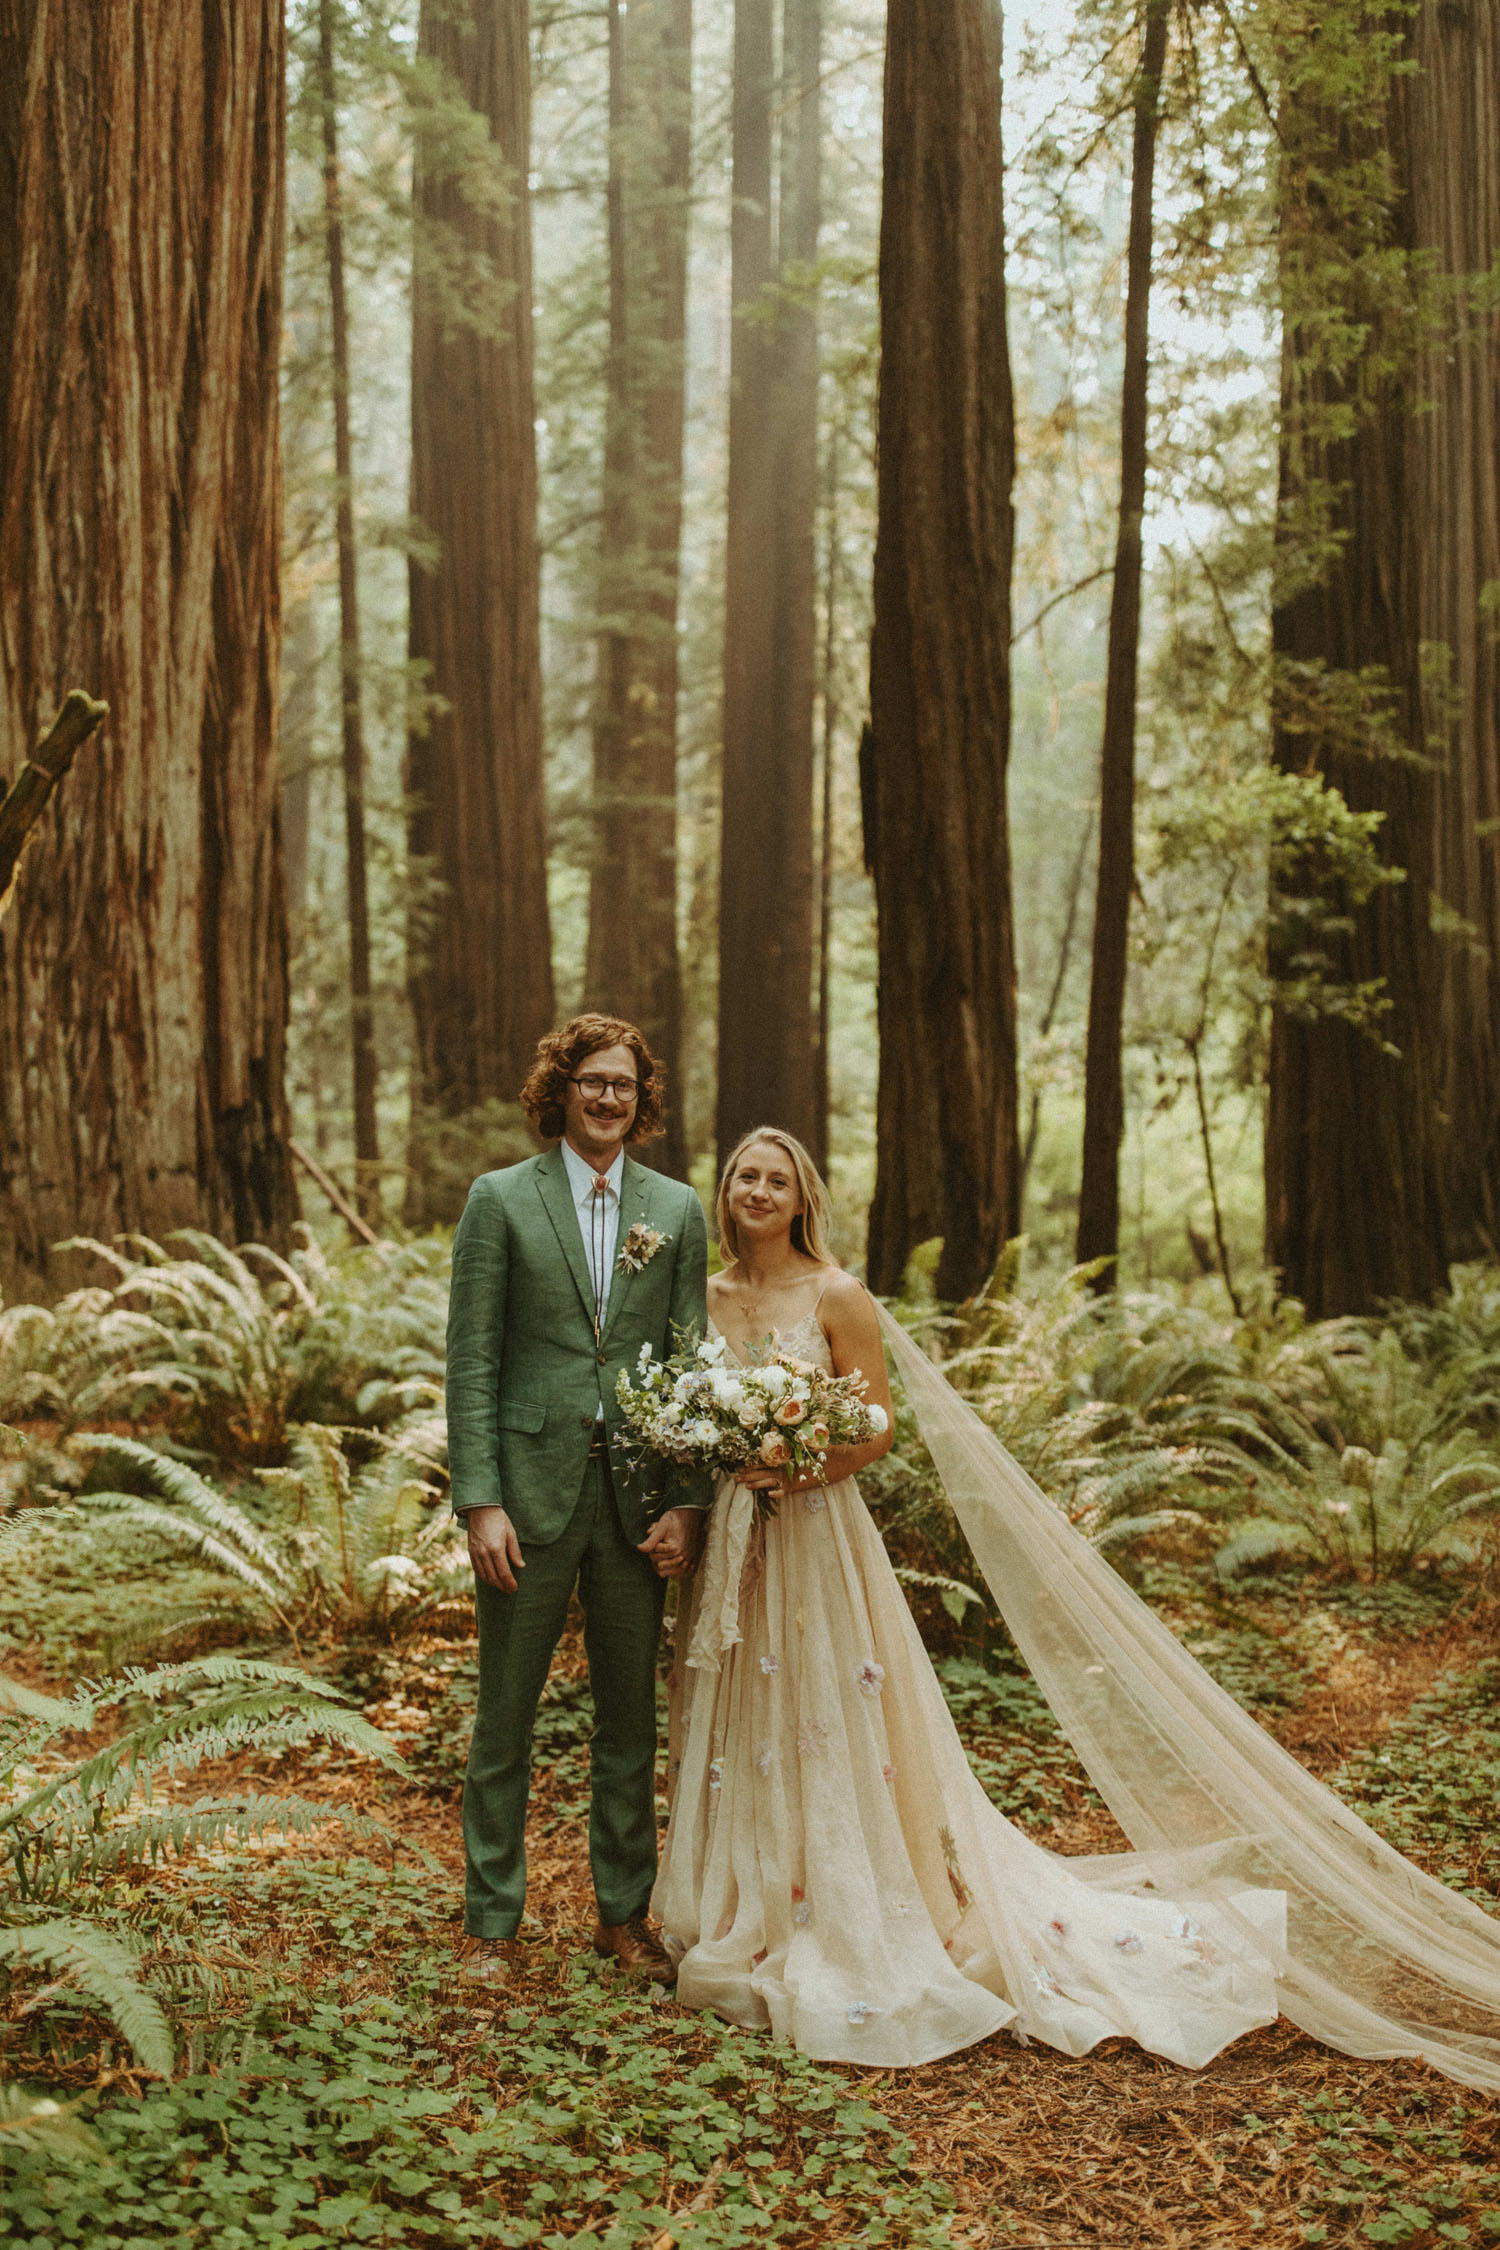 A One-Of-A-Kind Floral Wedding Dress for this Redwoods Elopement